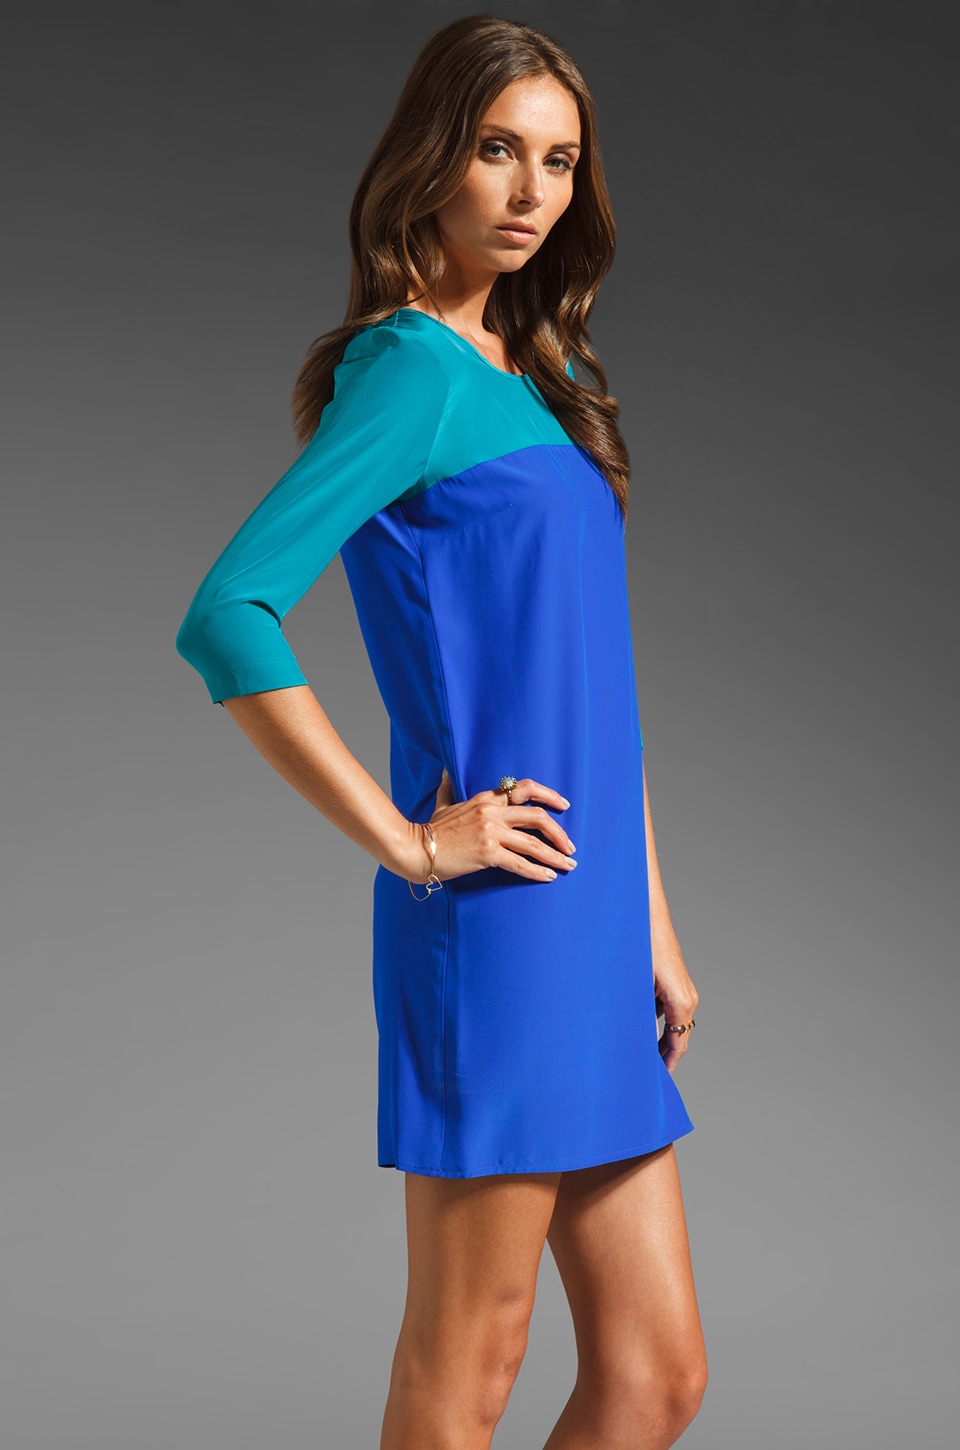 Amanda Uprichard Jordan Dress in Teal/Royal